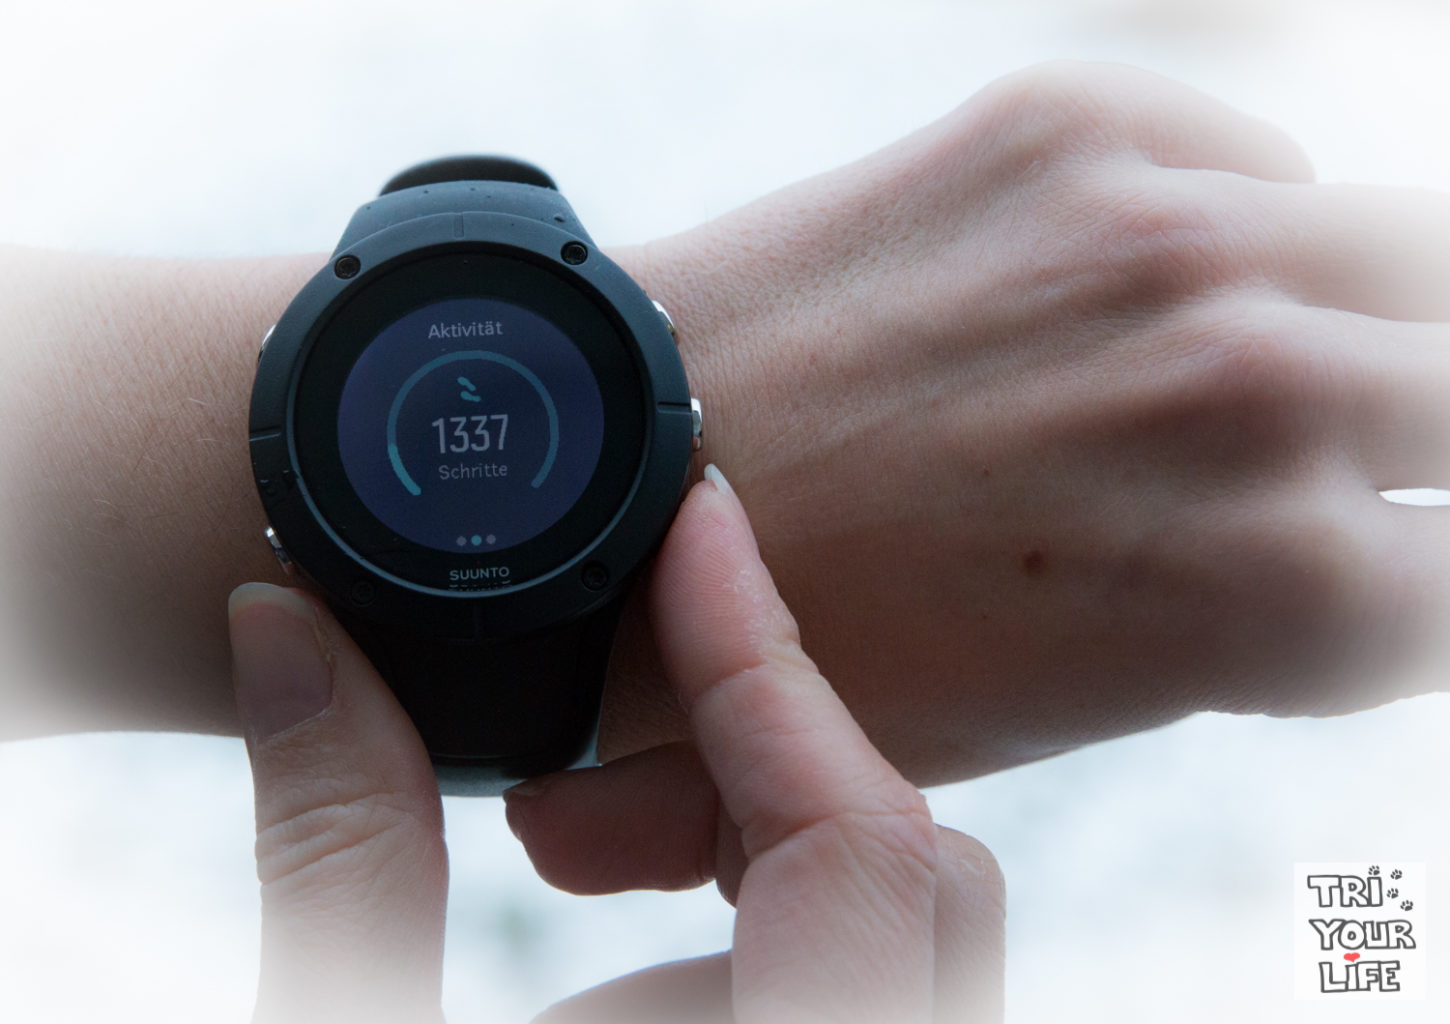 suunto spartan trainer wrist hr im test tri your life. Black Bedroom Furniture Sets. Home Design Ideas